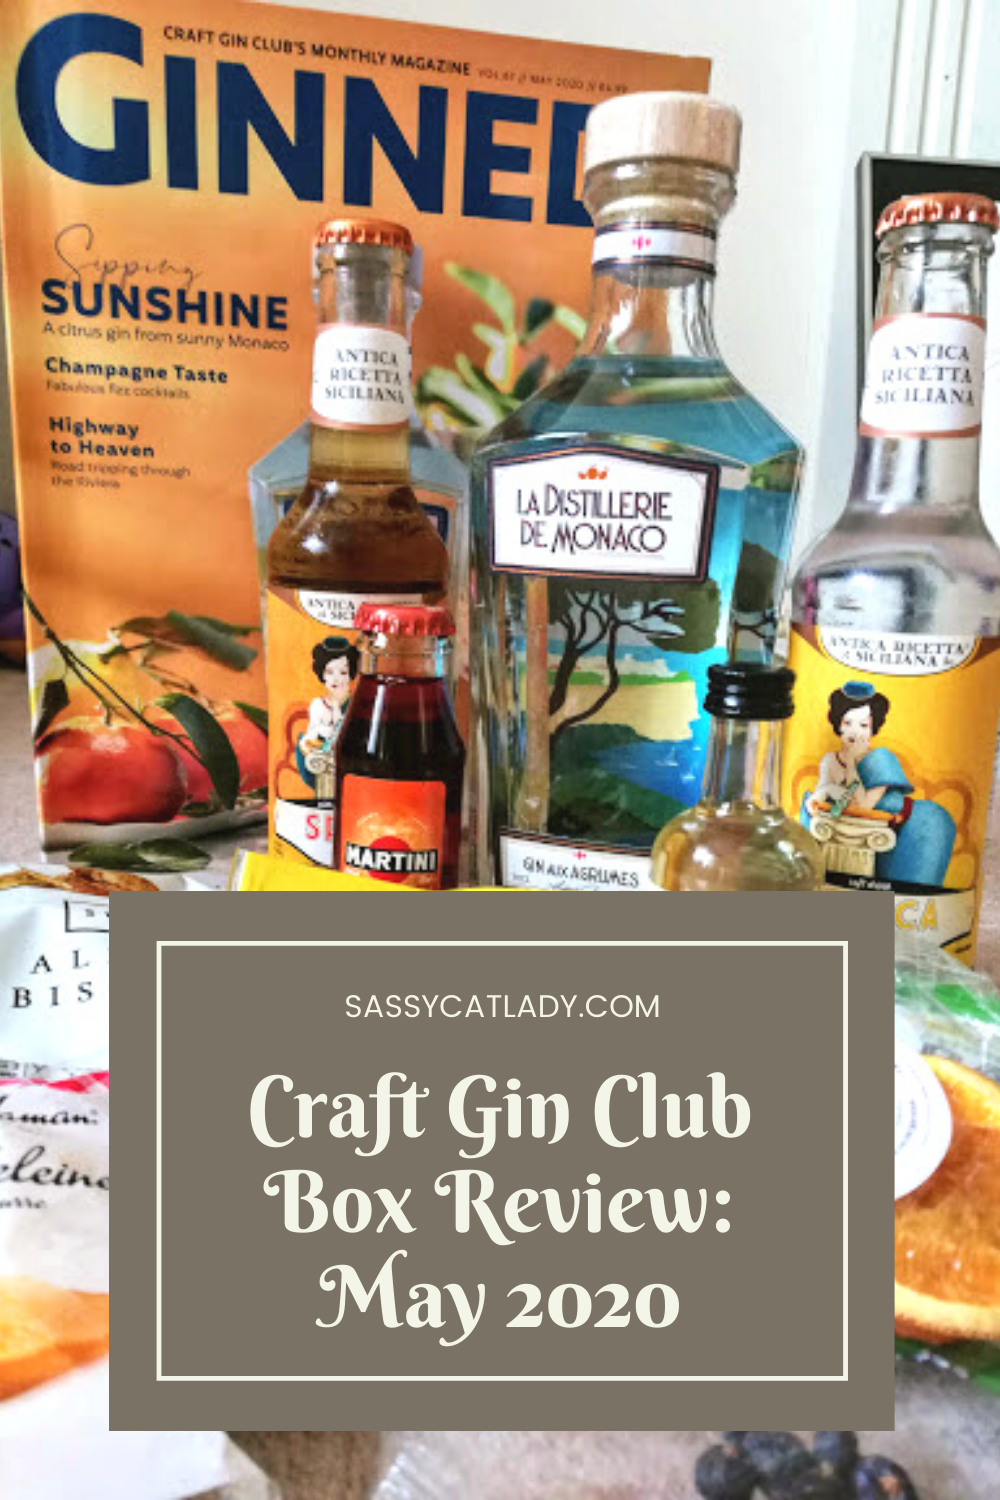 Craft Gin Club Box Review - May 2020